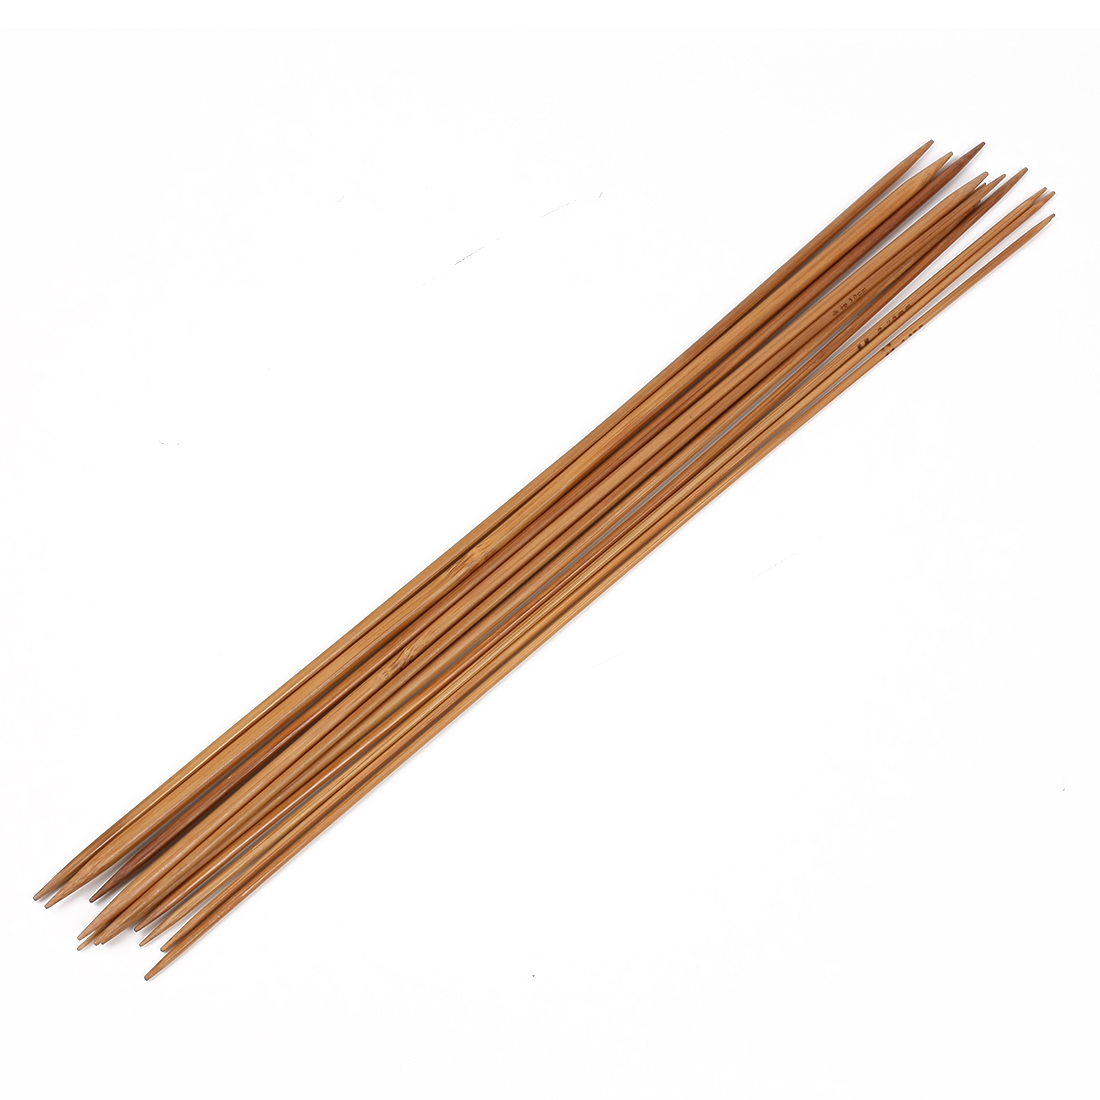 Double Point Straight Flexible Carbonized Bamboo Knitting Needles 35cm 11 Sets Sweater Needles